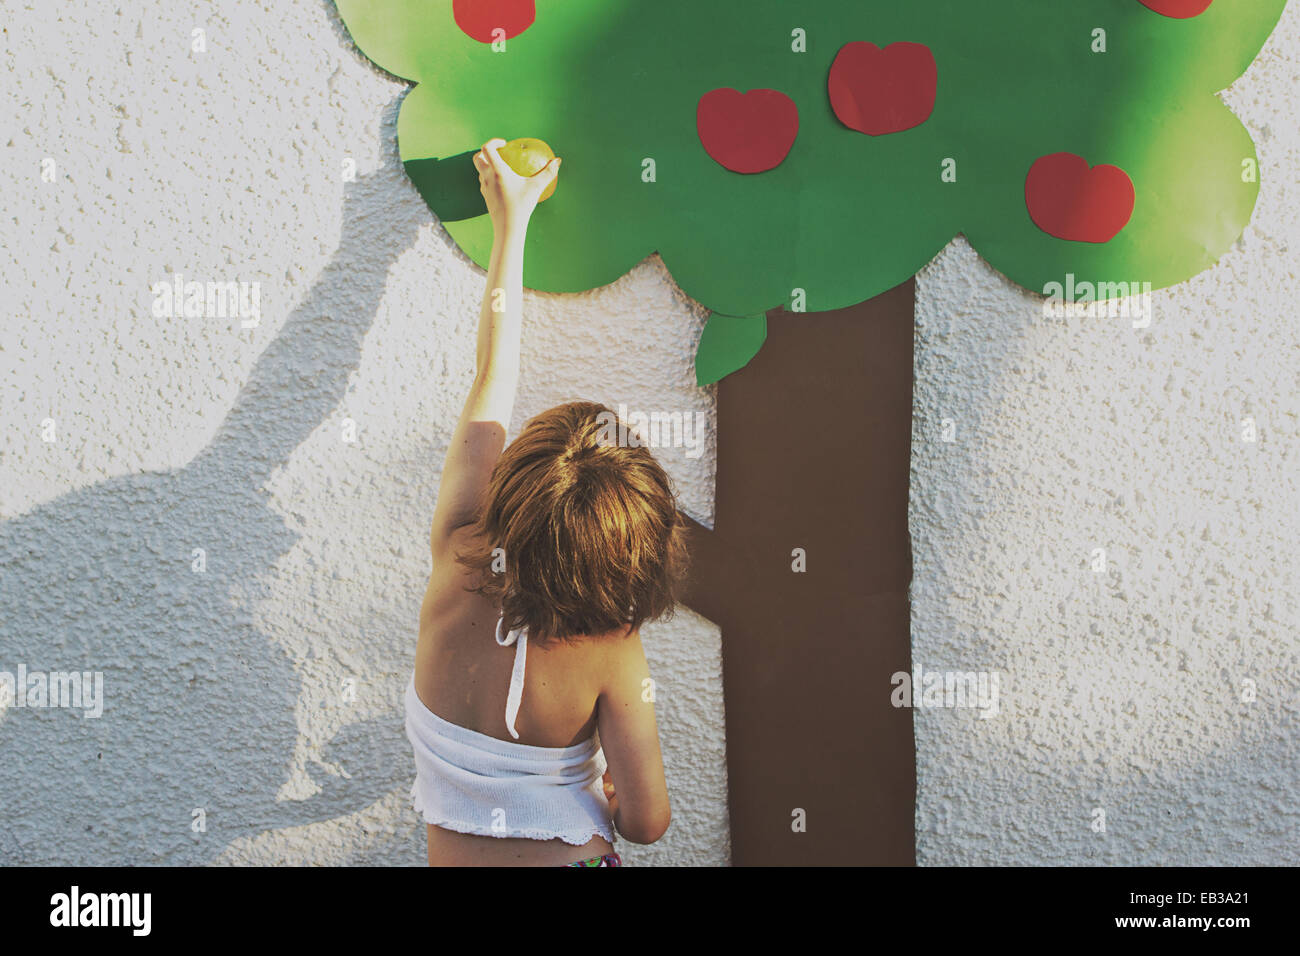 Girl pretending to pick an apple from conceptual tree - Stock Image